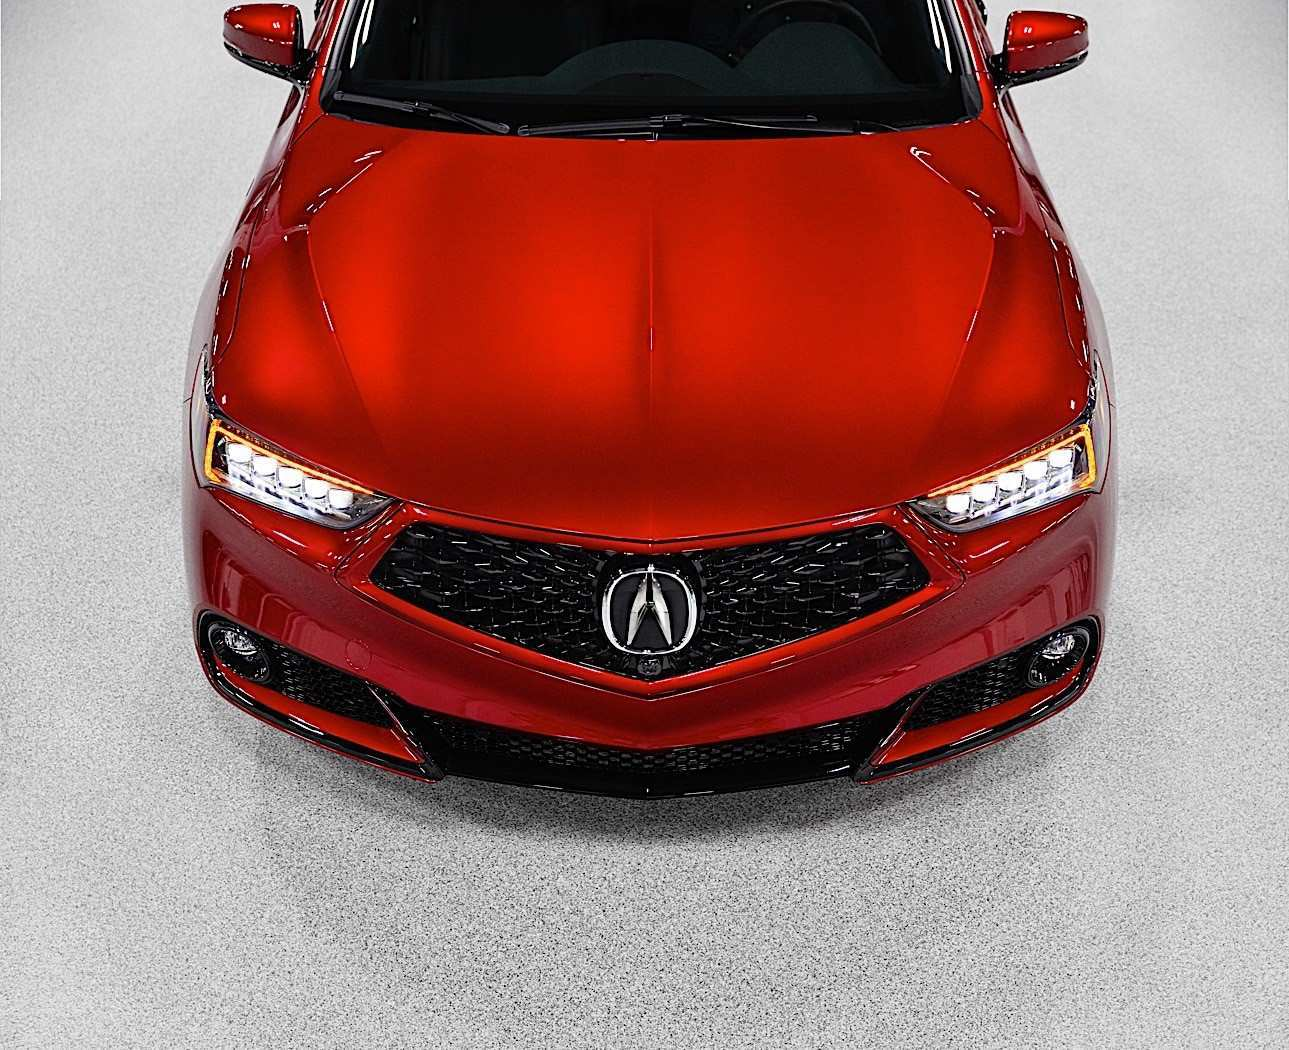 88 Great When Do 2020 Acura Cars Come Out Images by When Do 2020 Acura Cars Come Out